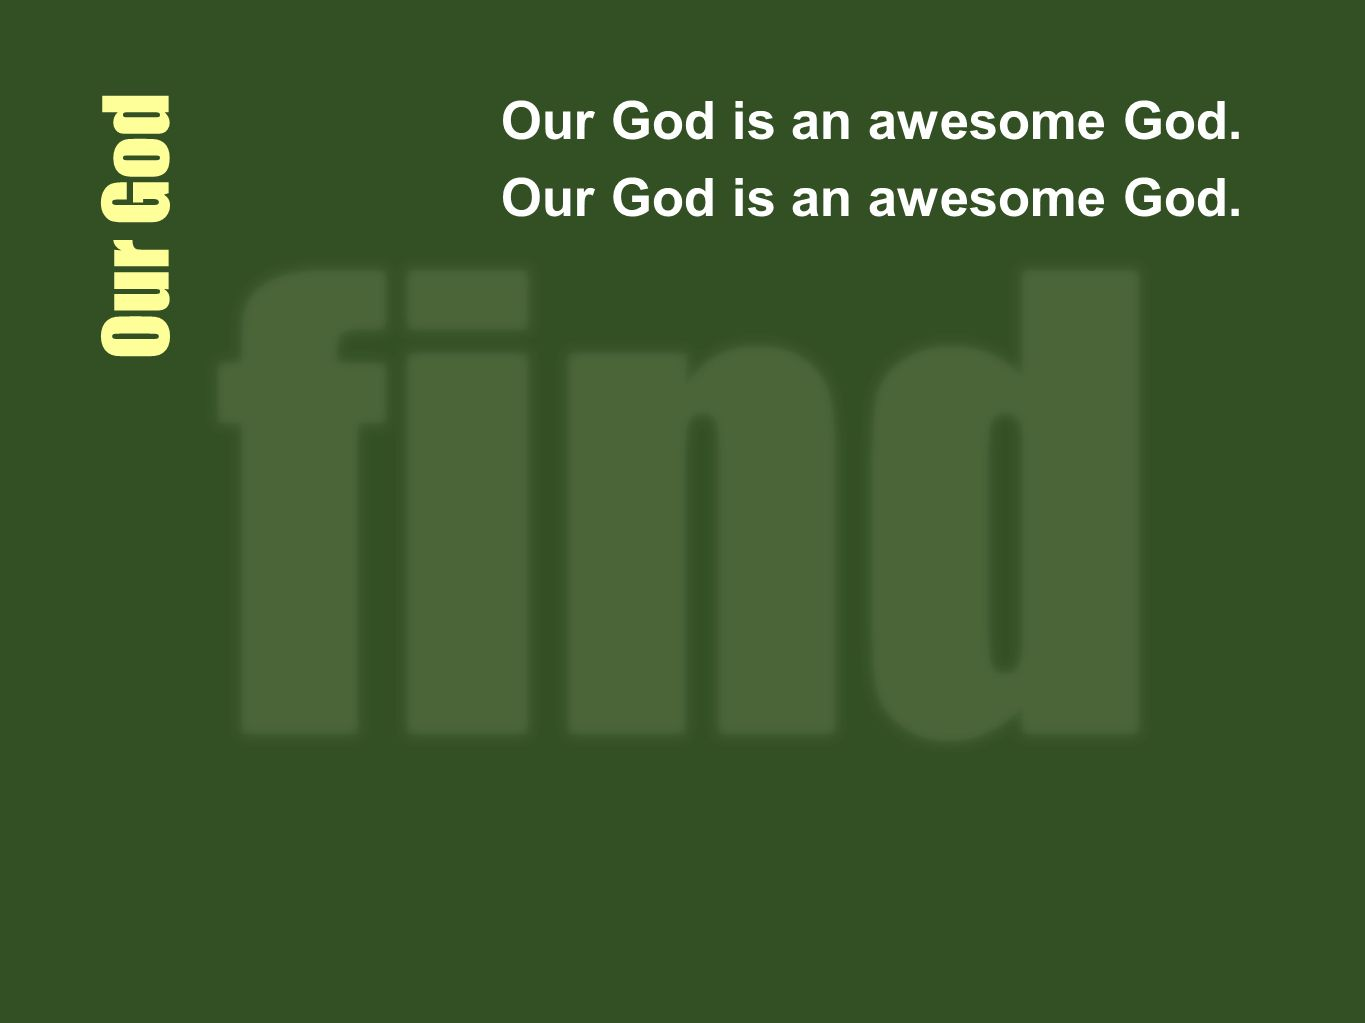 Our God is an awesome God.